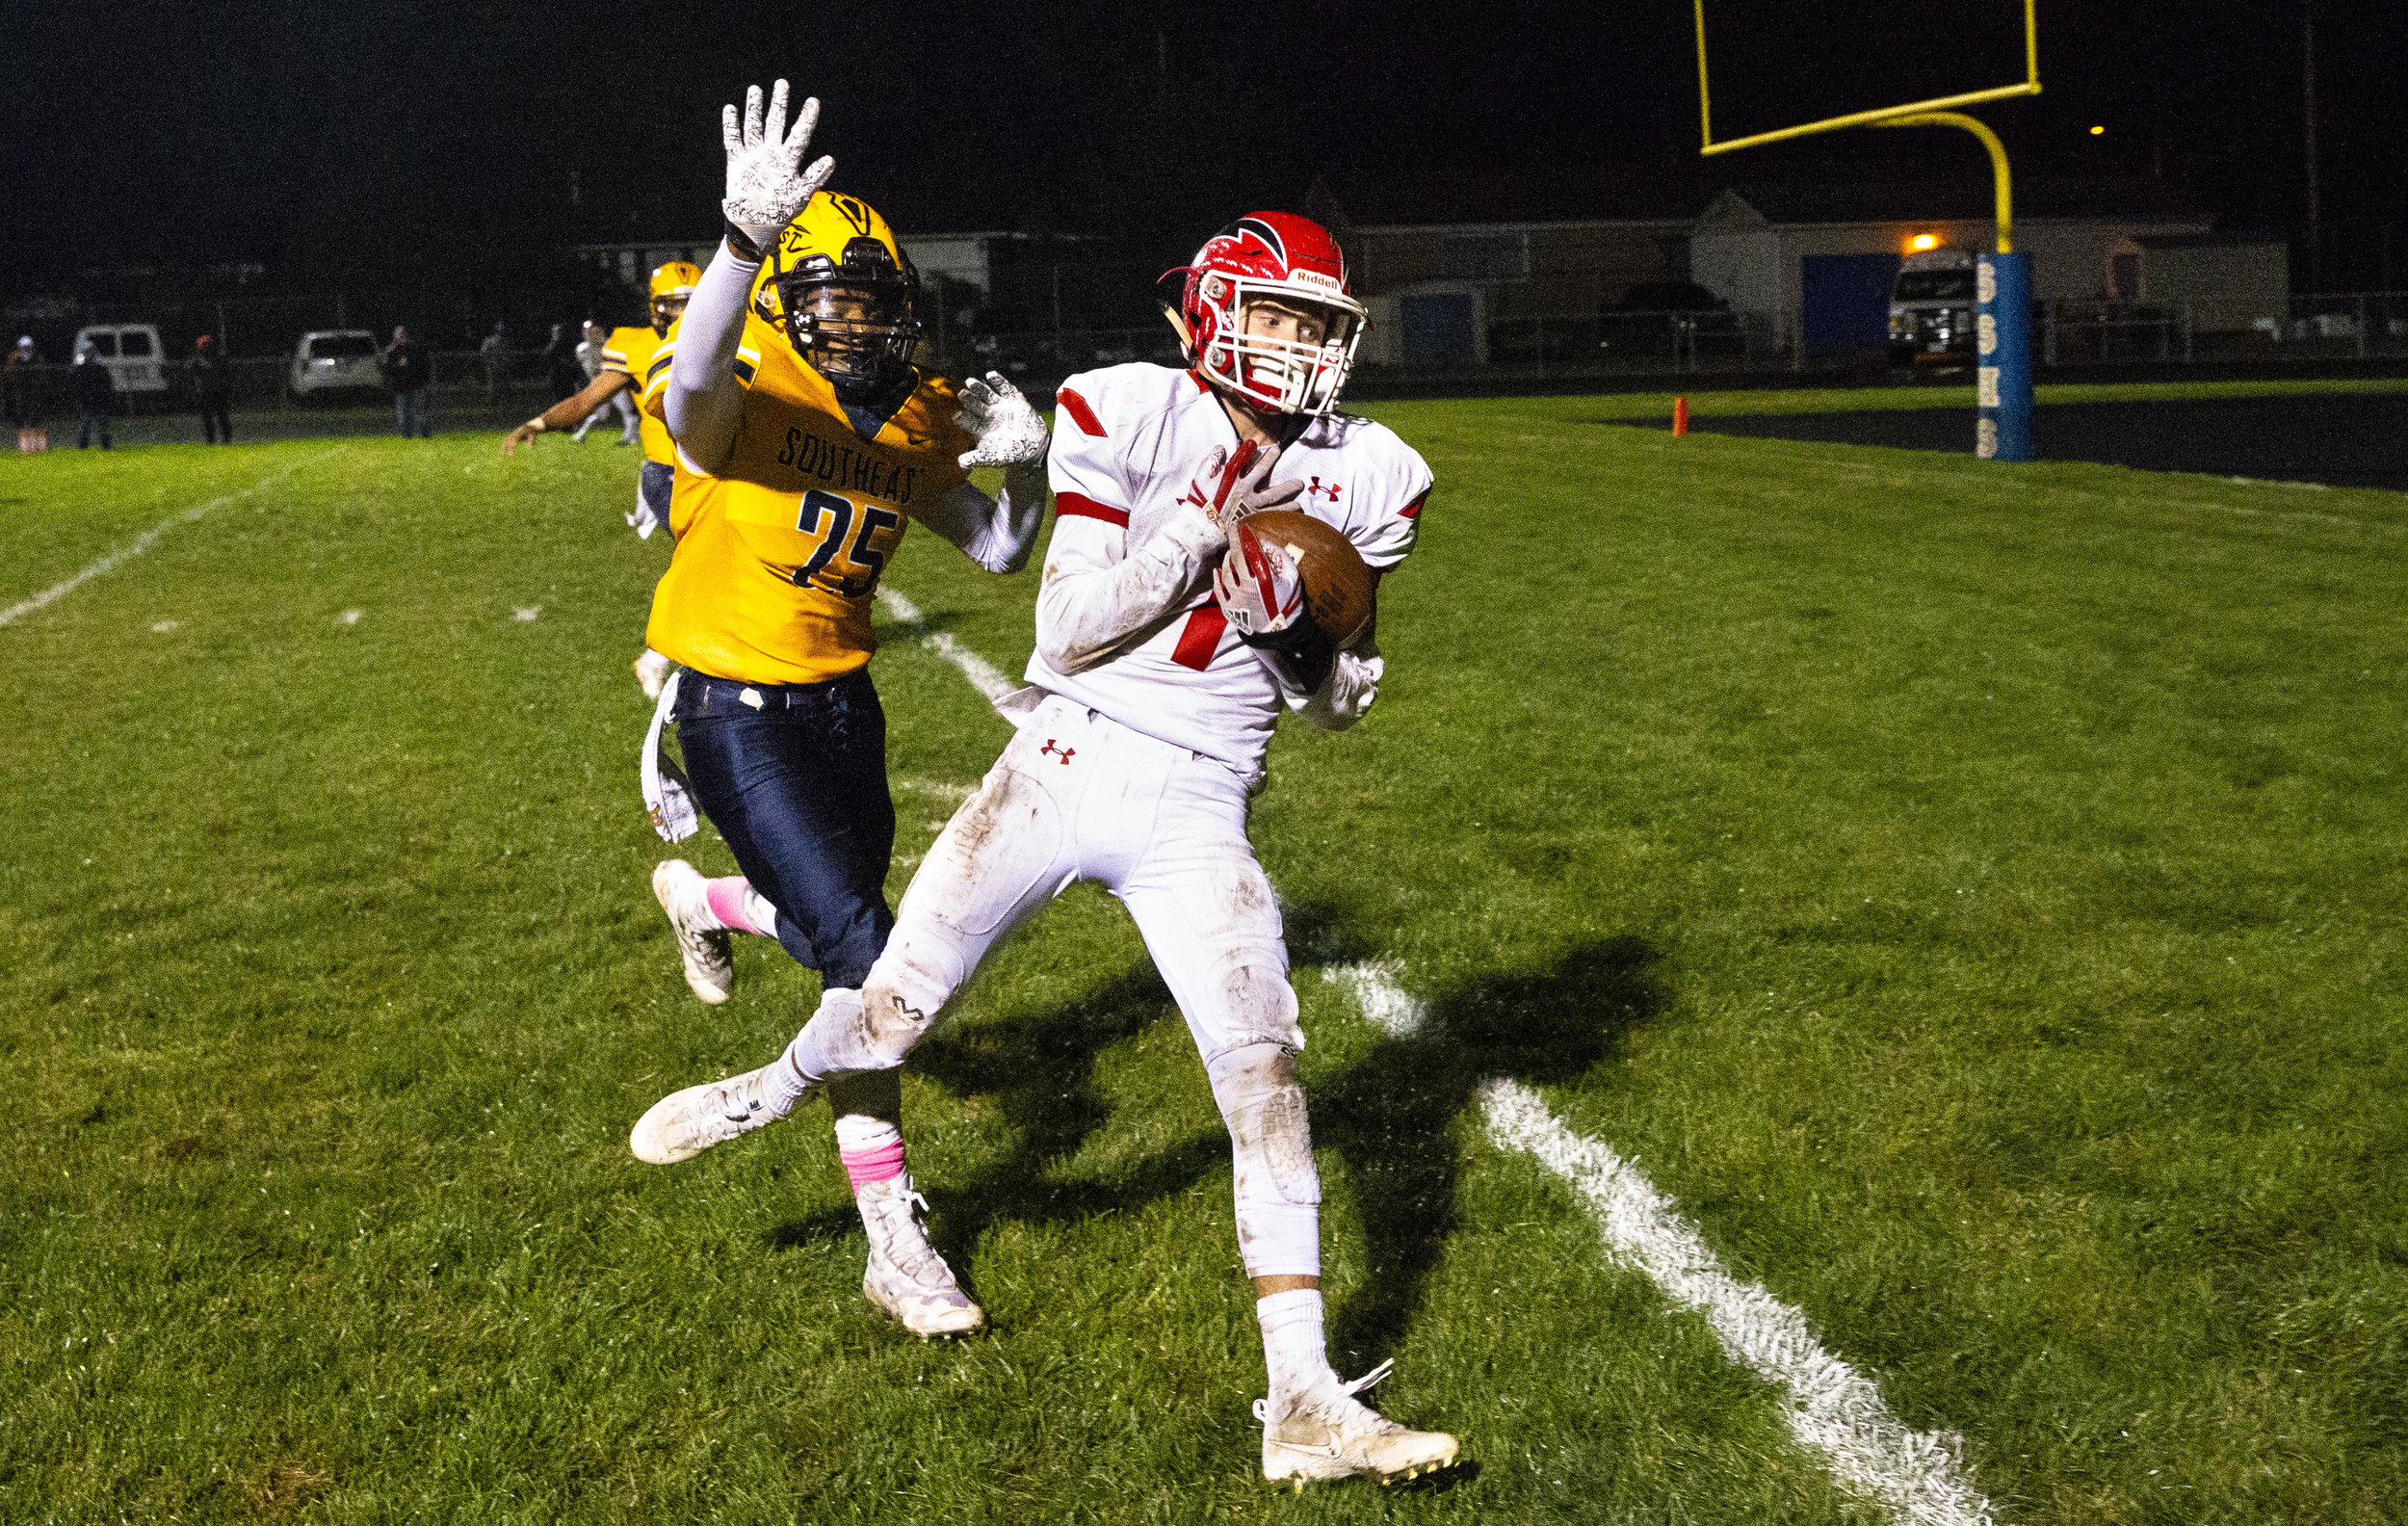 Glenwood's Drew Dunbar brings in a pass for a touchdown with Southeast's Tavaris Lane defending to put the Titans up 45-14 in the third quarter Friday, Oct. 12, 2018 at Southeast High School's Spartan Field in Springfield, Ill. [Rich Saal/The State Journal-Register]